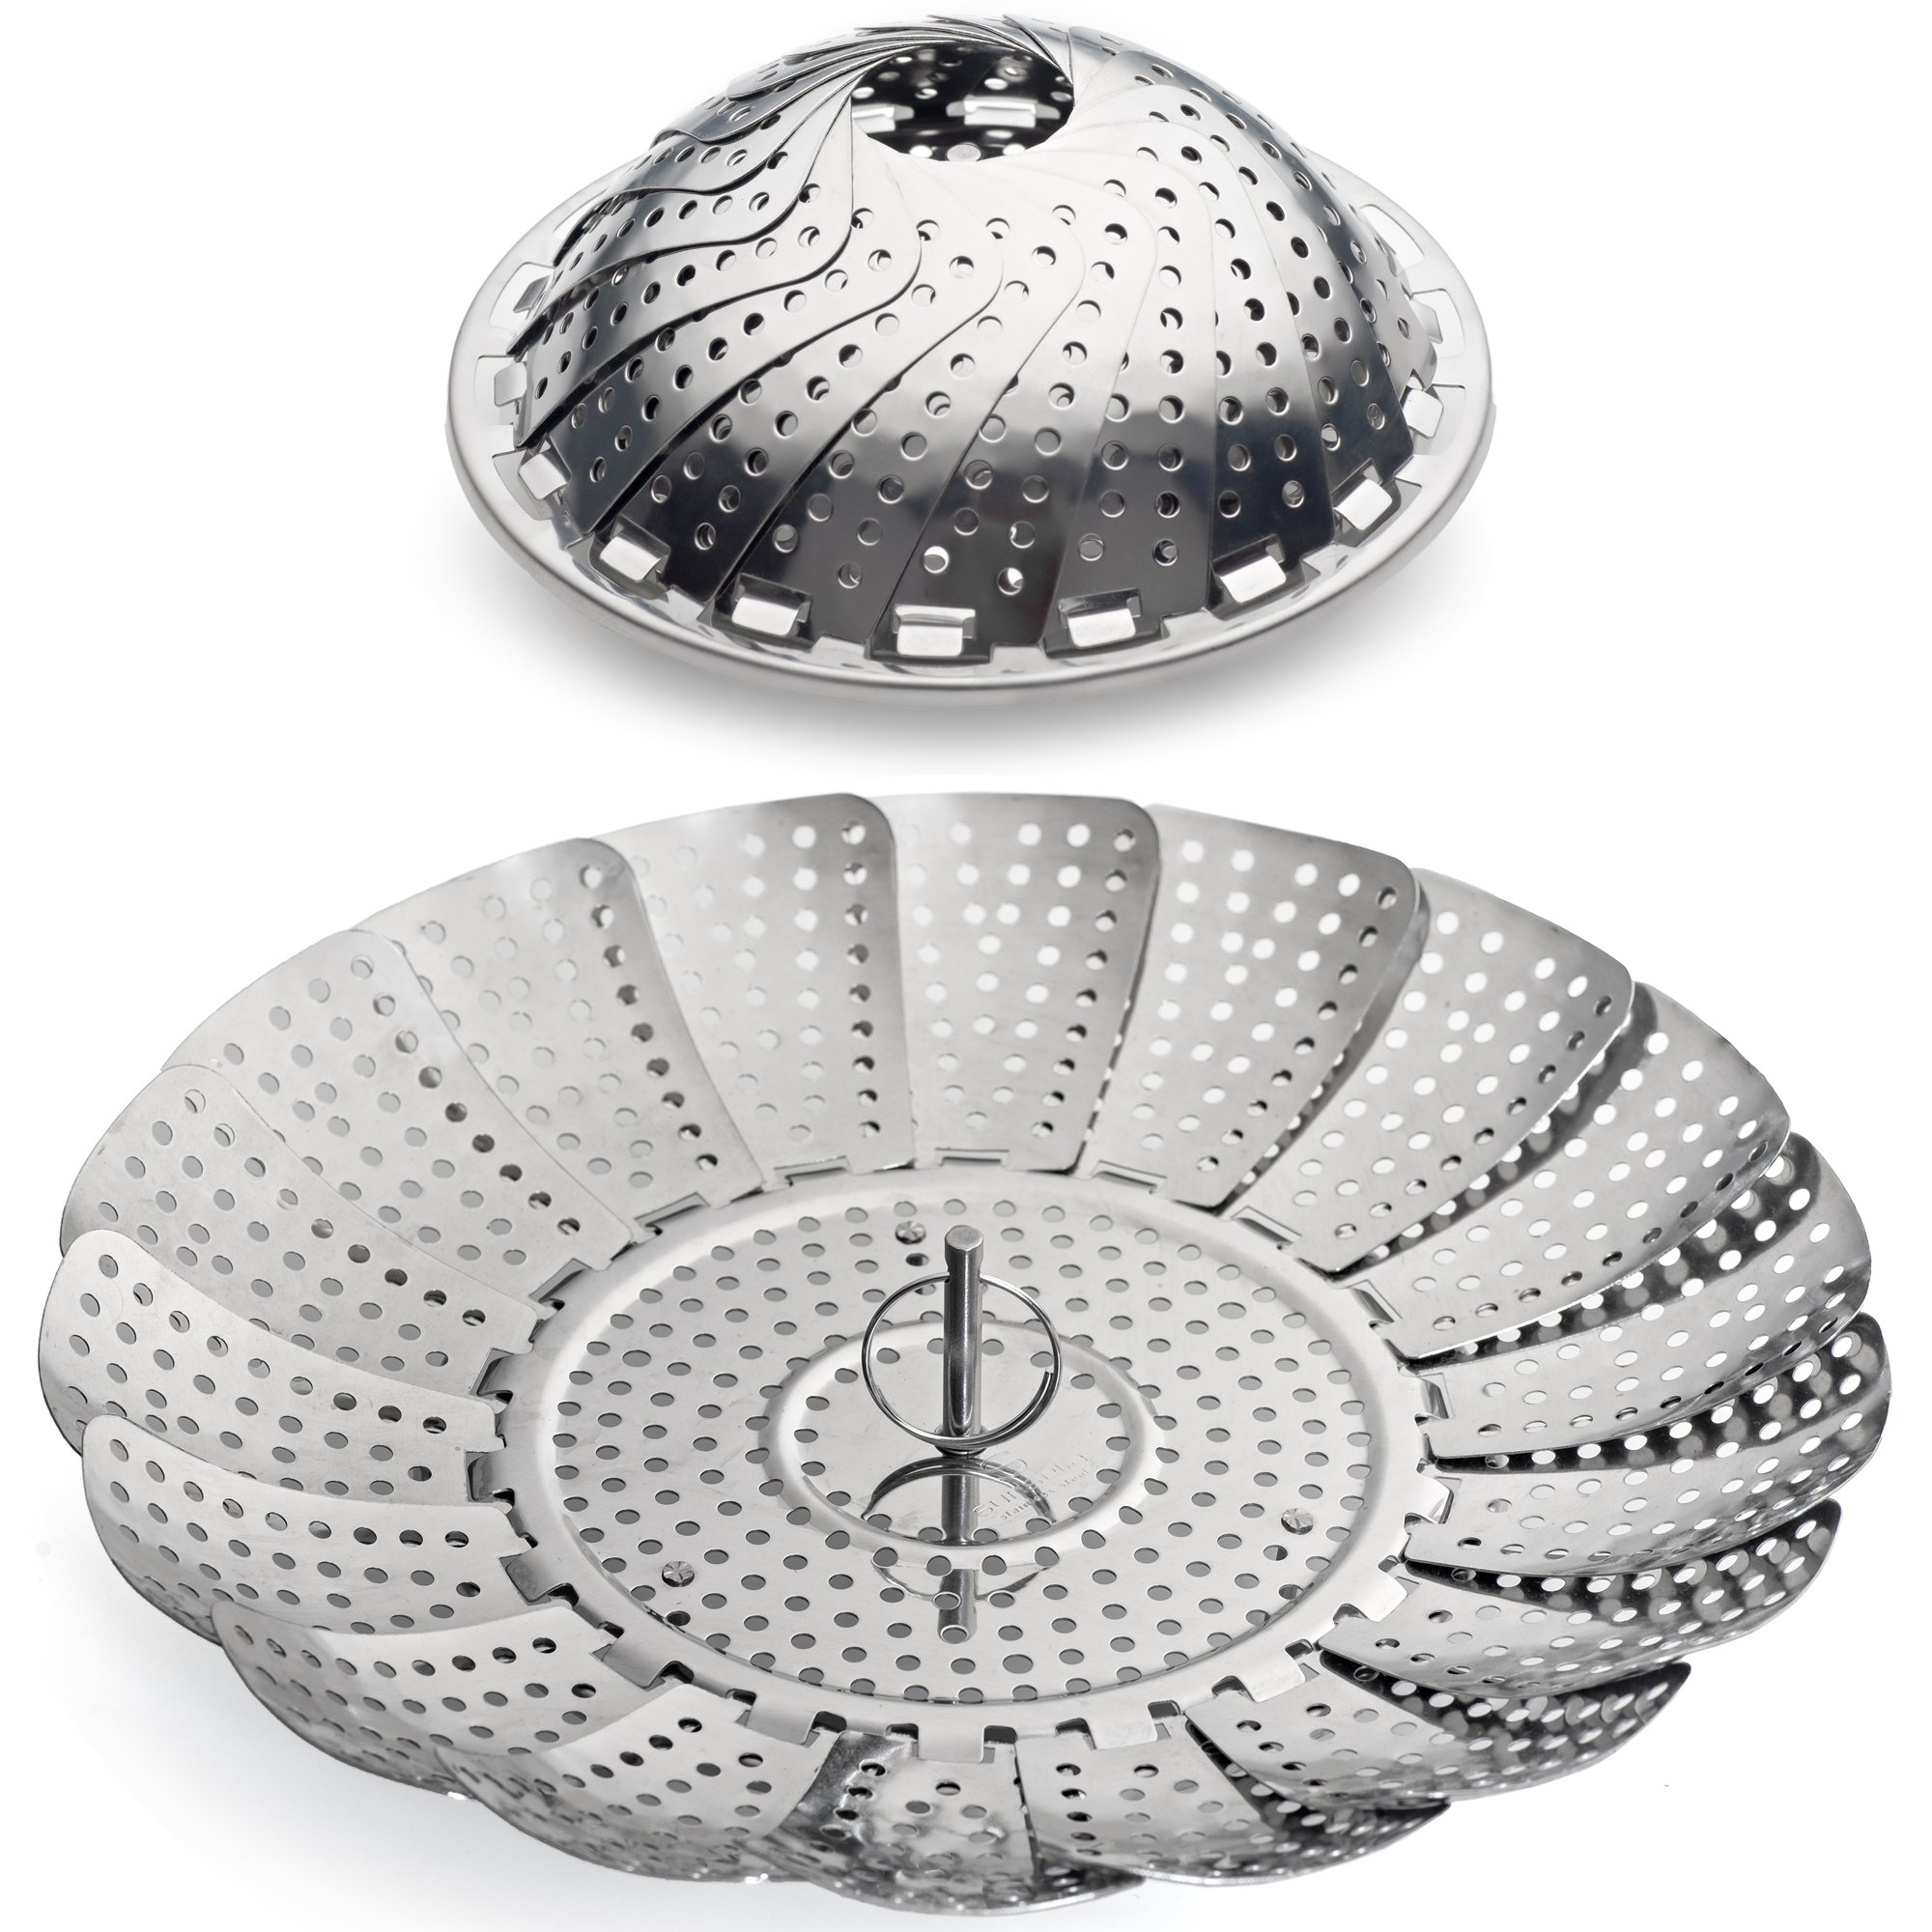 Sunsella Vegetable Steamer - 5.3'' to 9.3'' - 100% Stainless  Steel by Sunsella